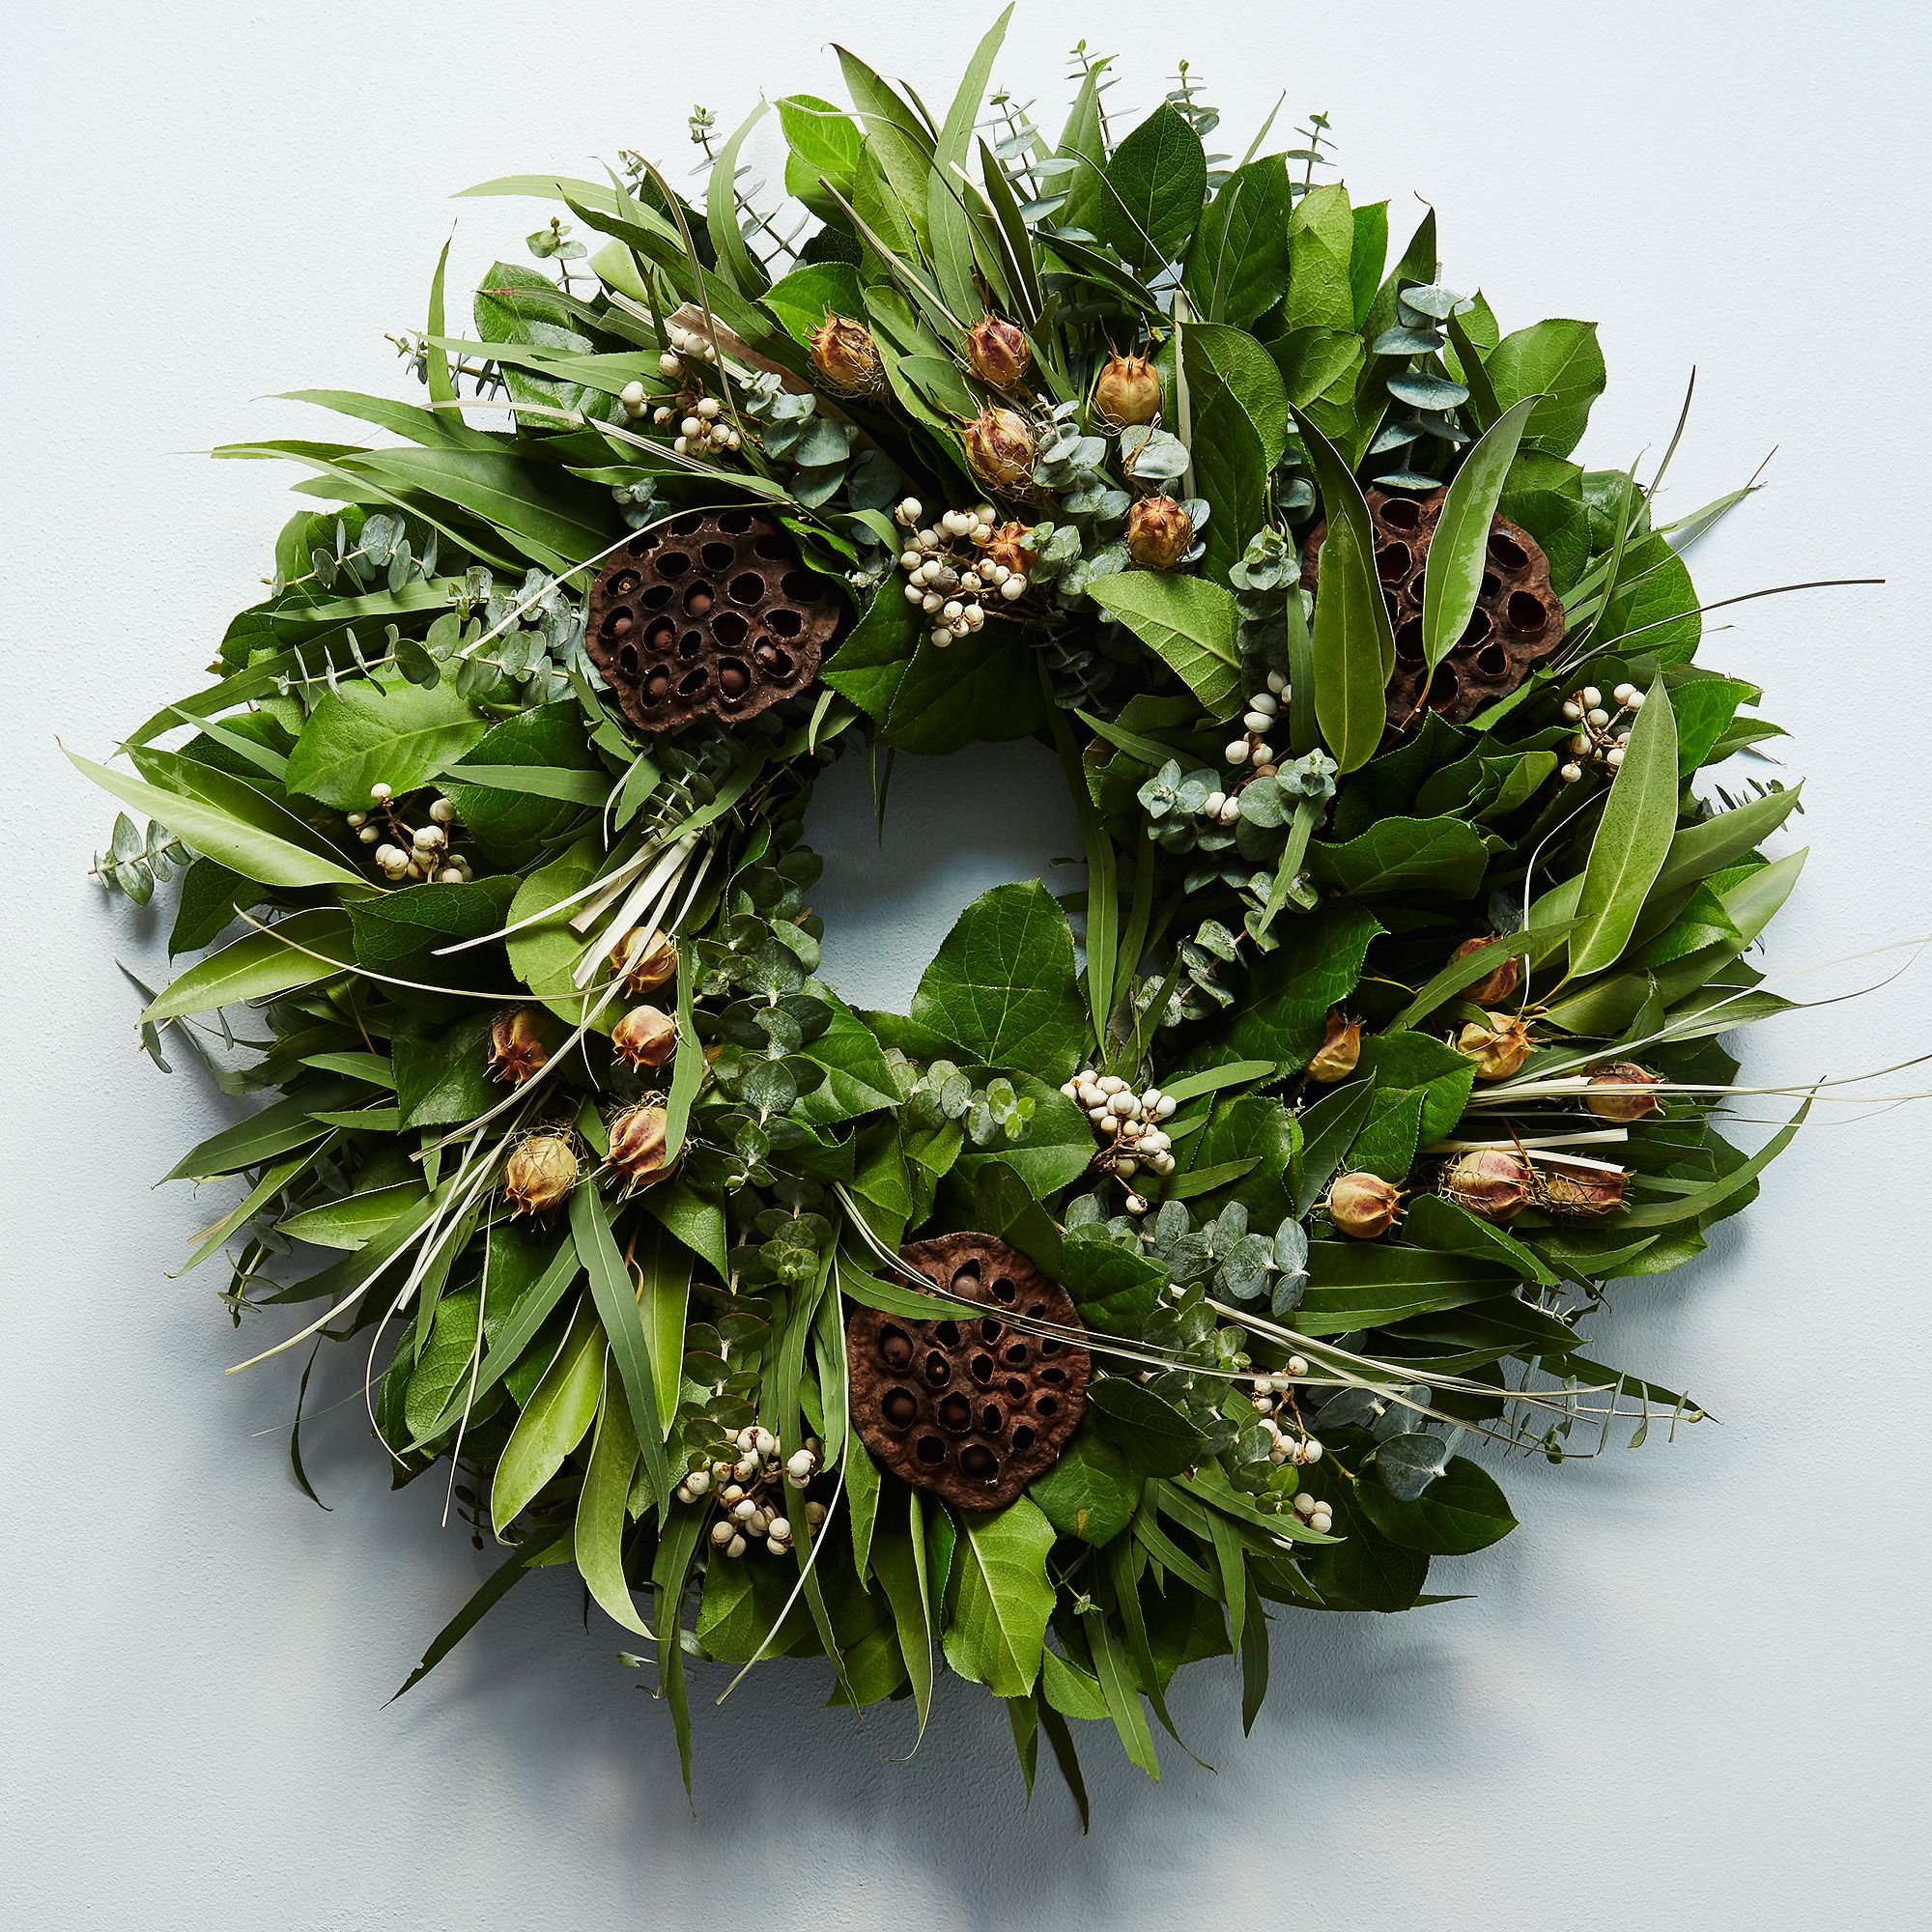 Wreath by BarnOwlBaker